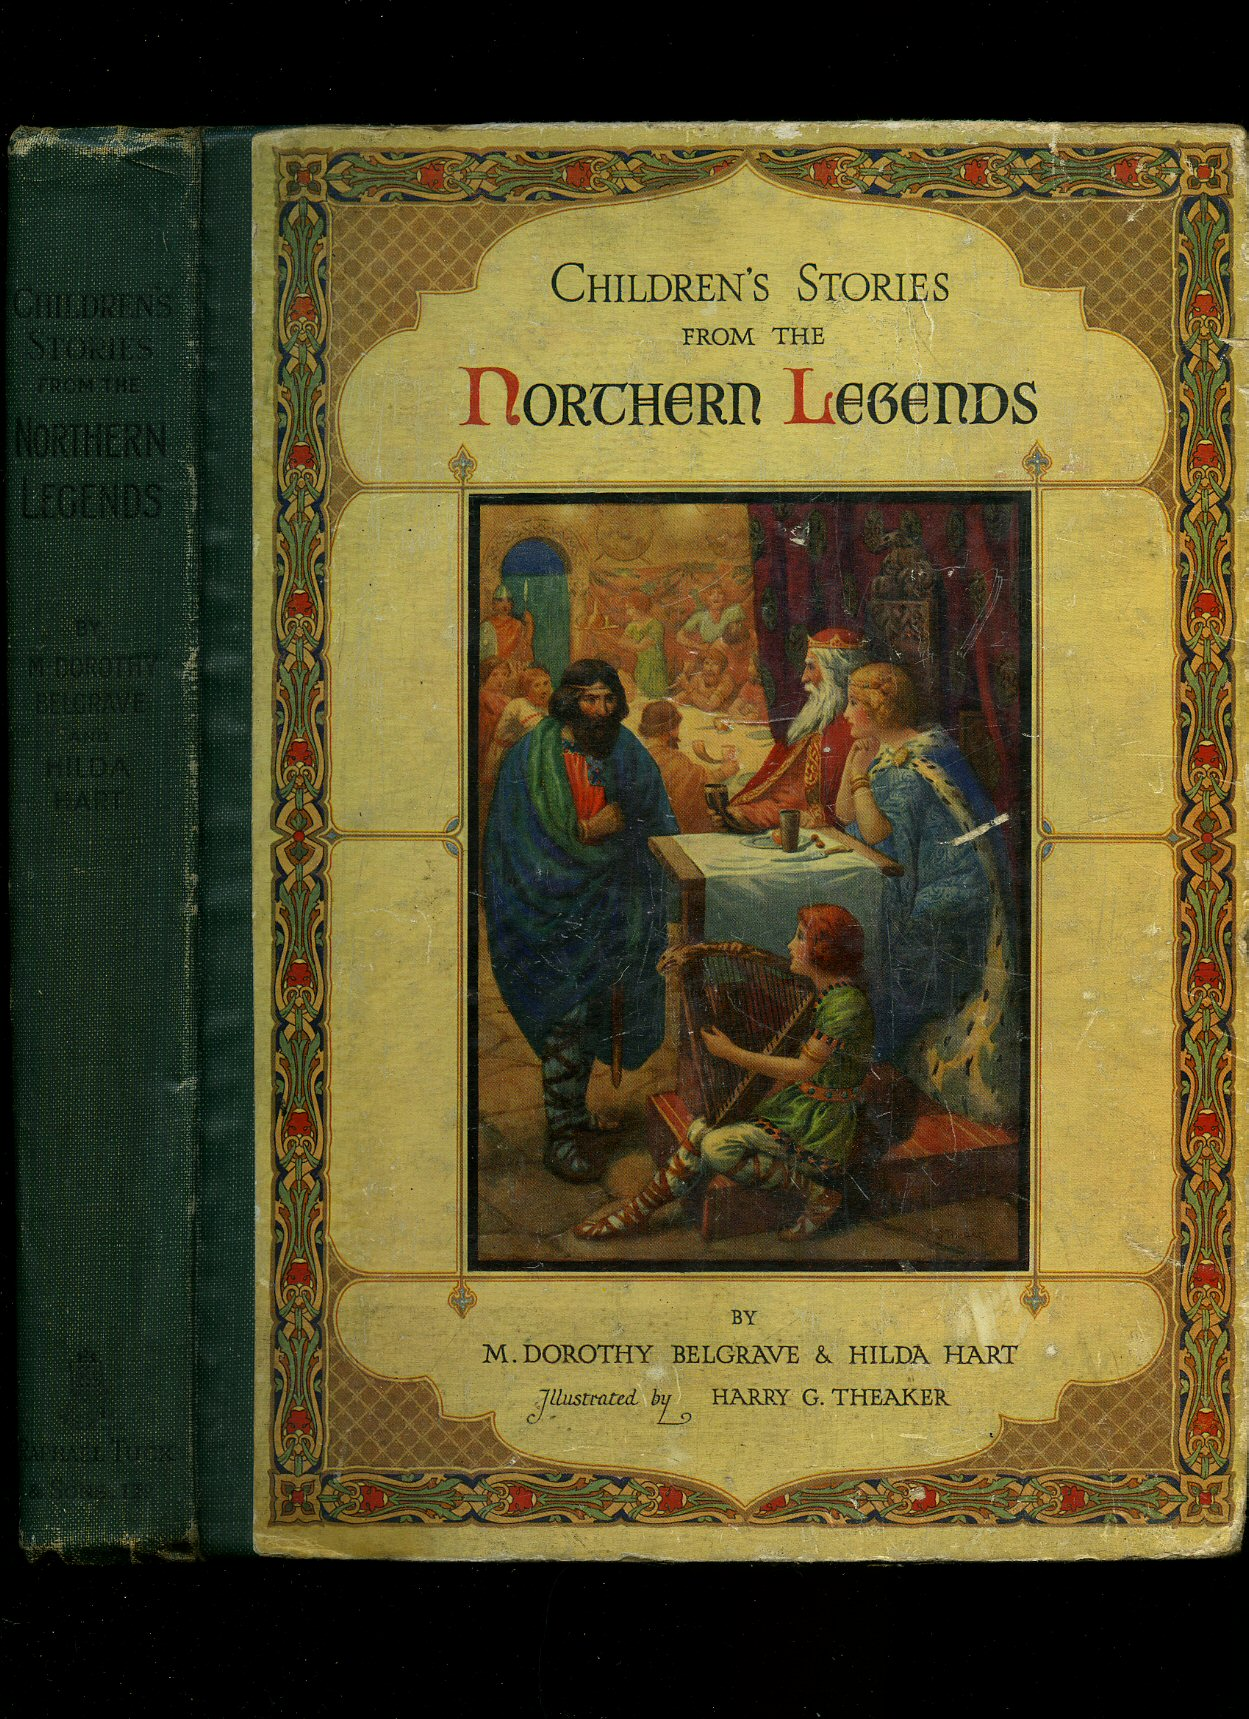 M. DOROTHY BELGRAVE AND HILDA HART [ILLUSTRATED BY HARRY G. THEAKER] - Children's Stories From the Northern Legends